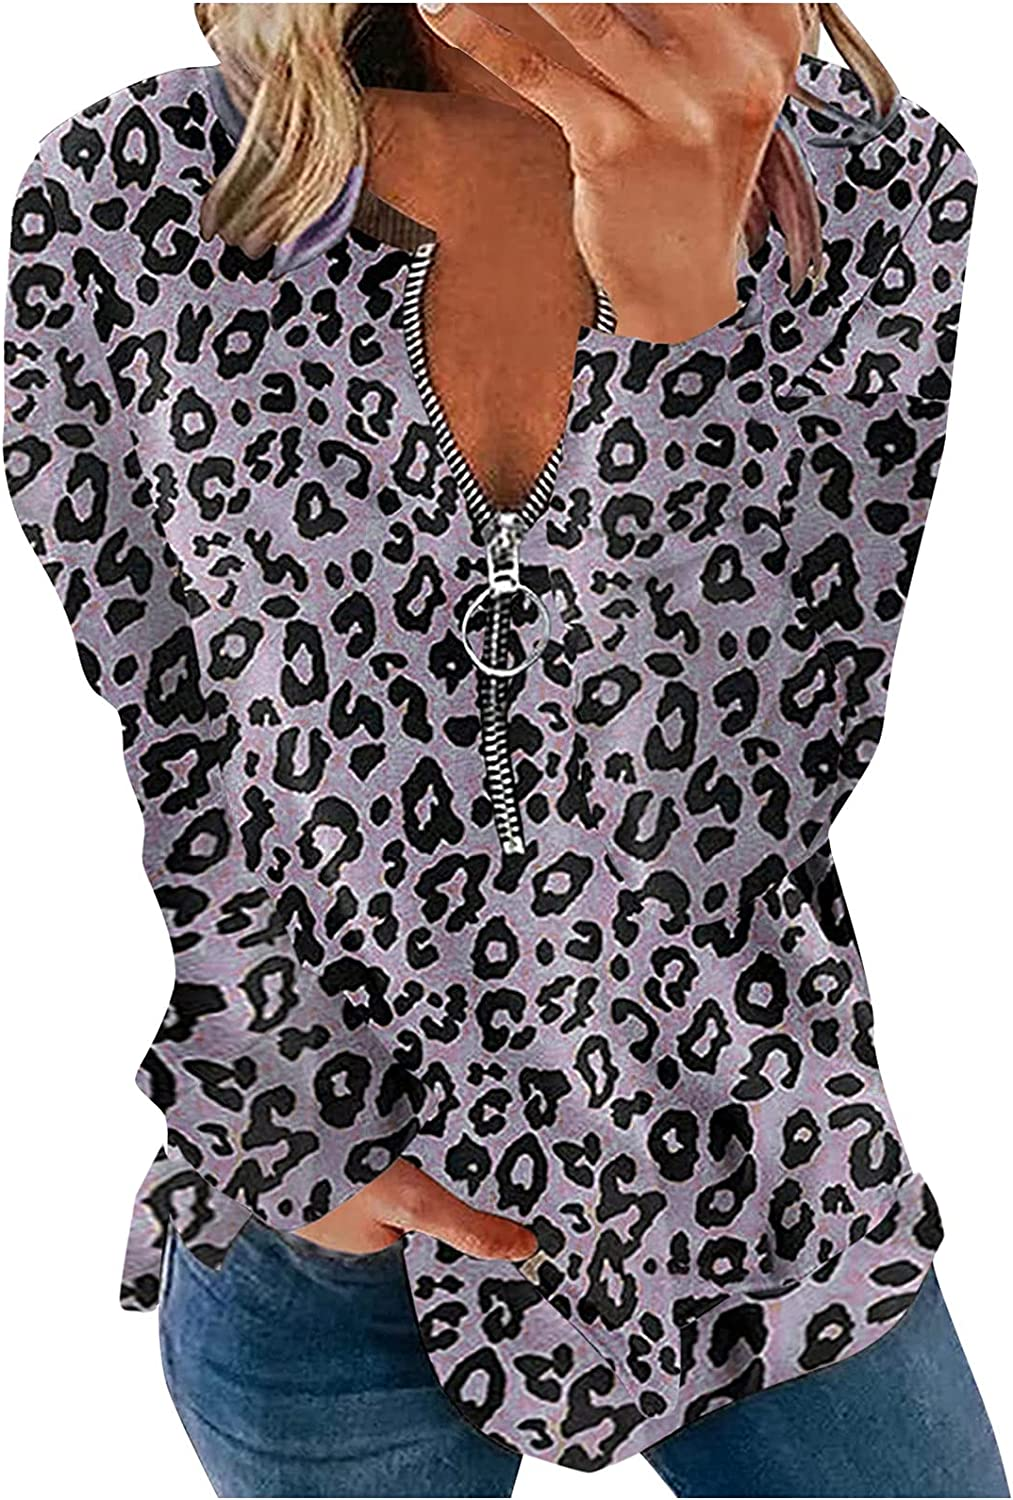 Women's Casual Leopard Print Zip up Sweatshirts Long Sleeve Oversize Pullover Loose Fit Tunic Blouse Tops